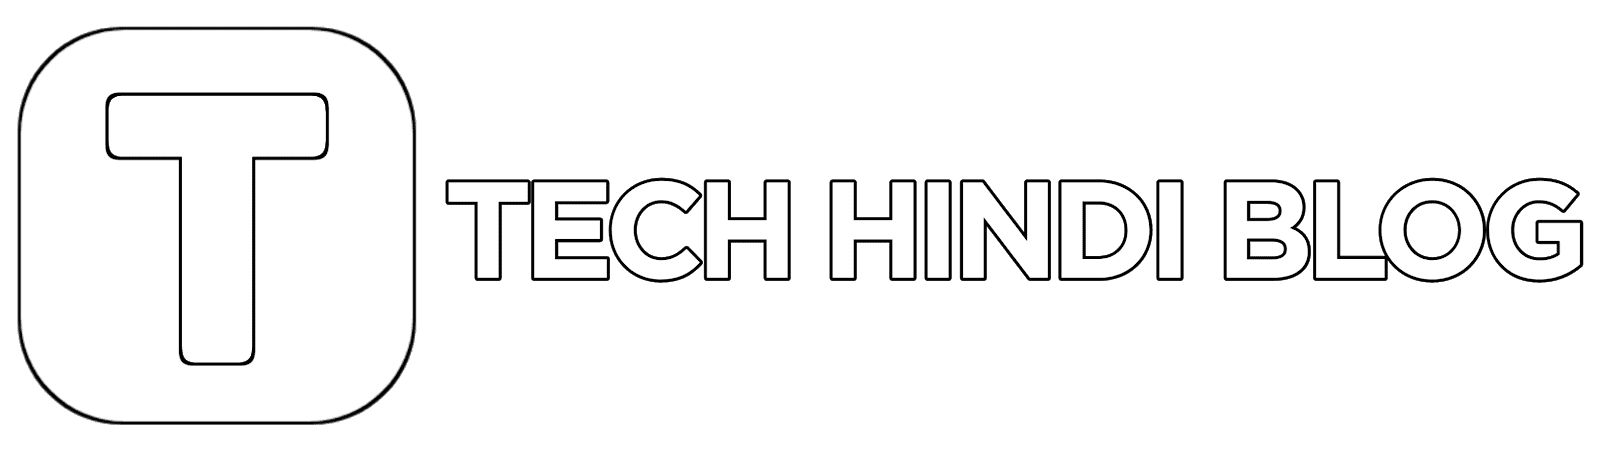 Tech Hindi Blog - Tech Ki Har Jankari